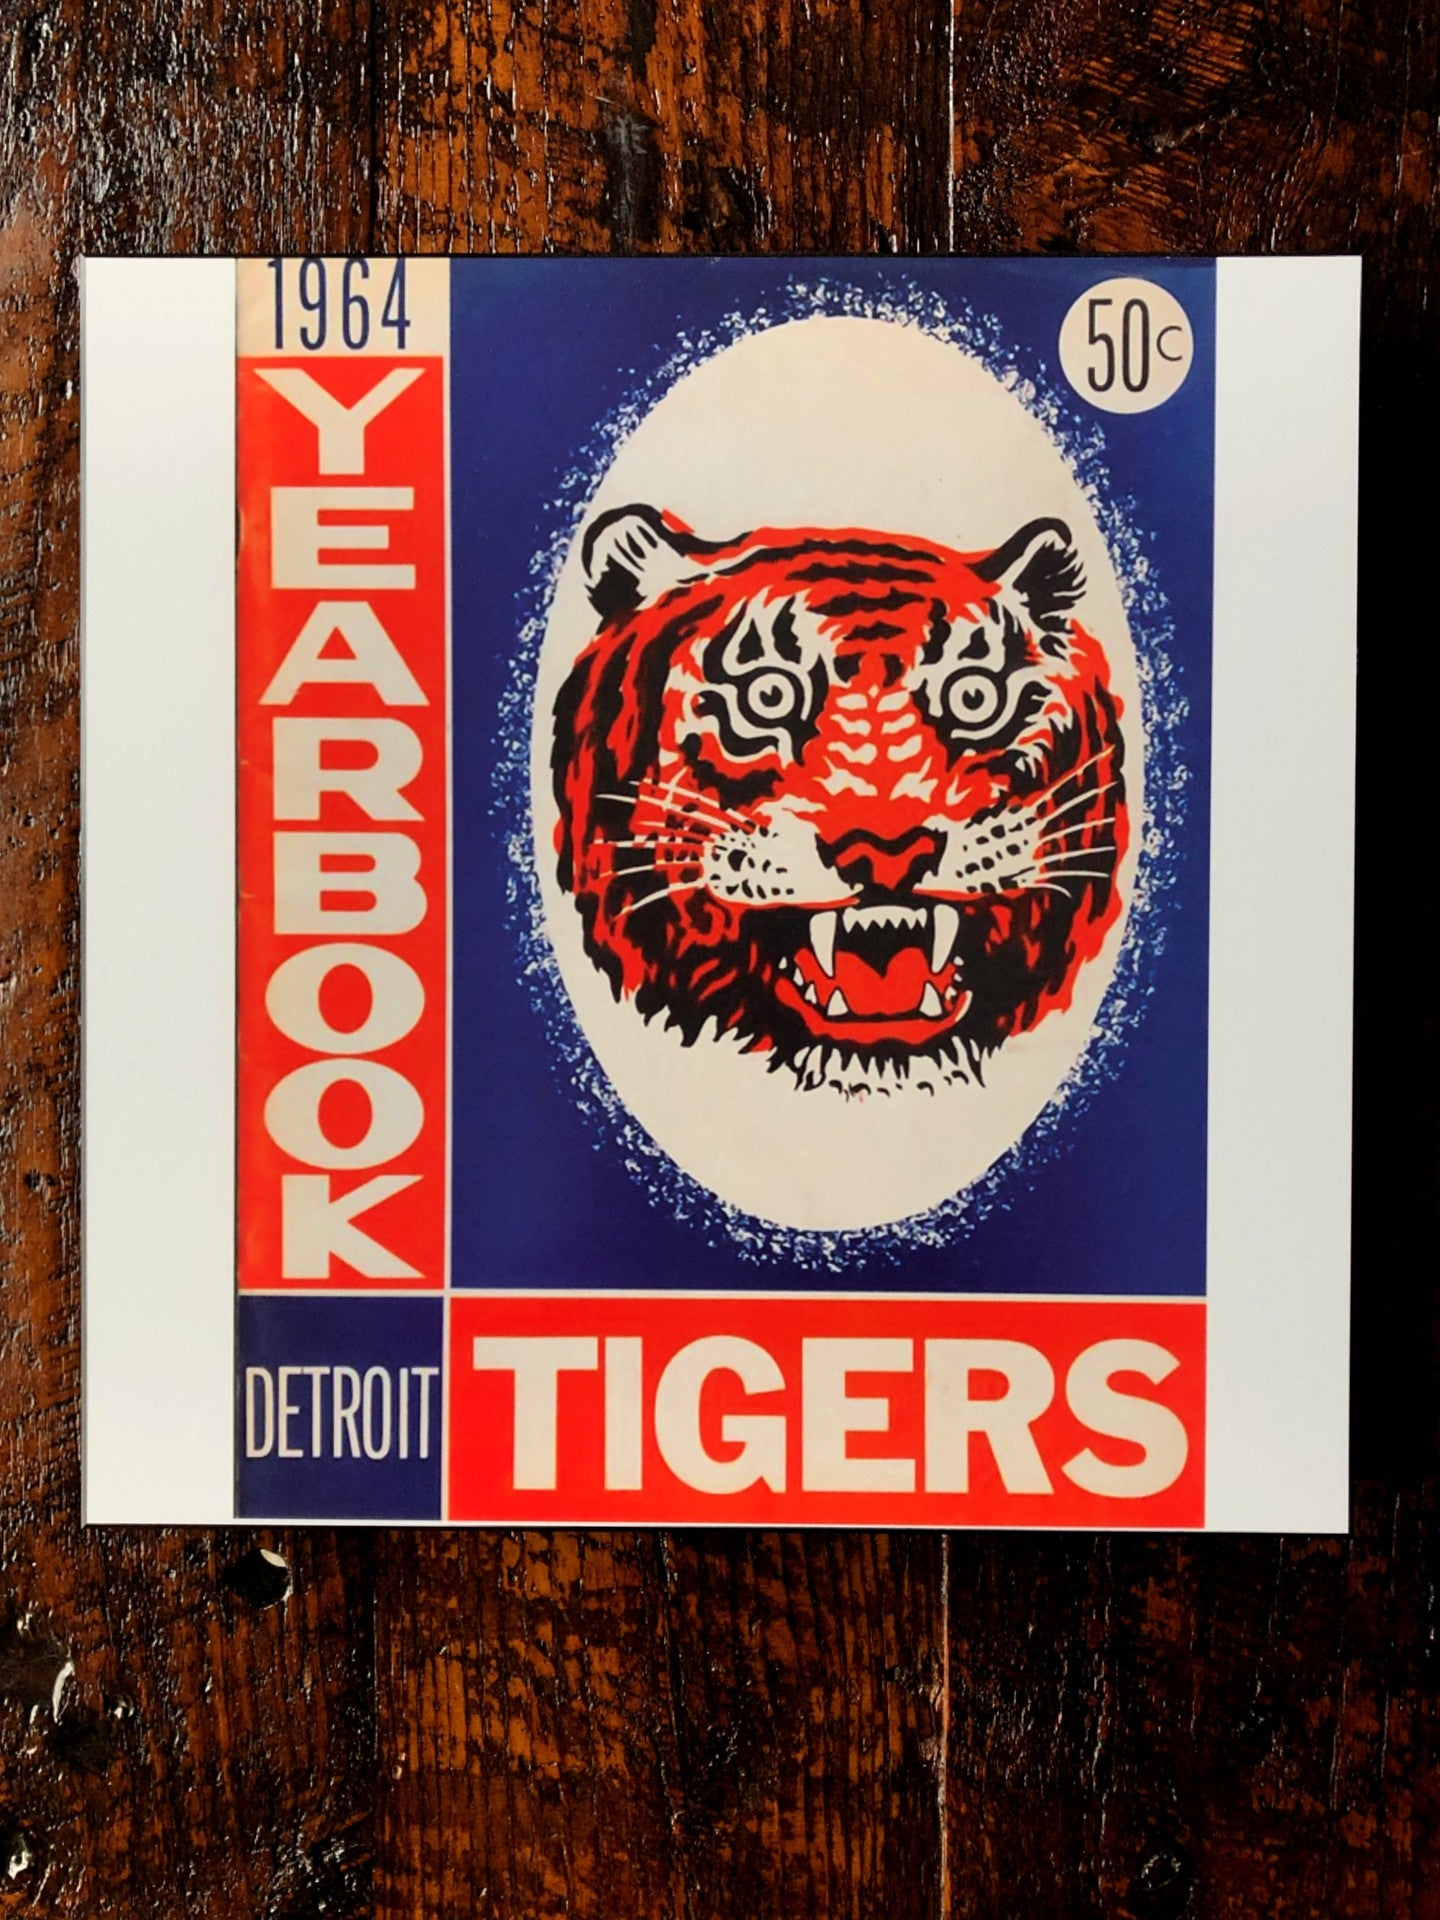 1964 Detroit Tigers Yearbook Woodblock Print - Pure Detroit